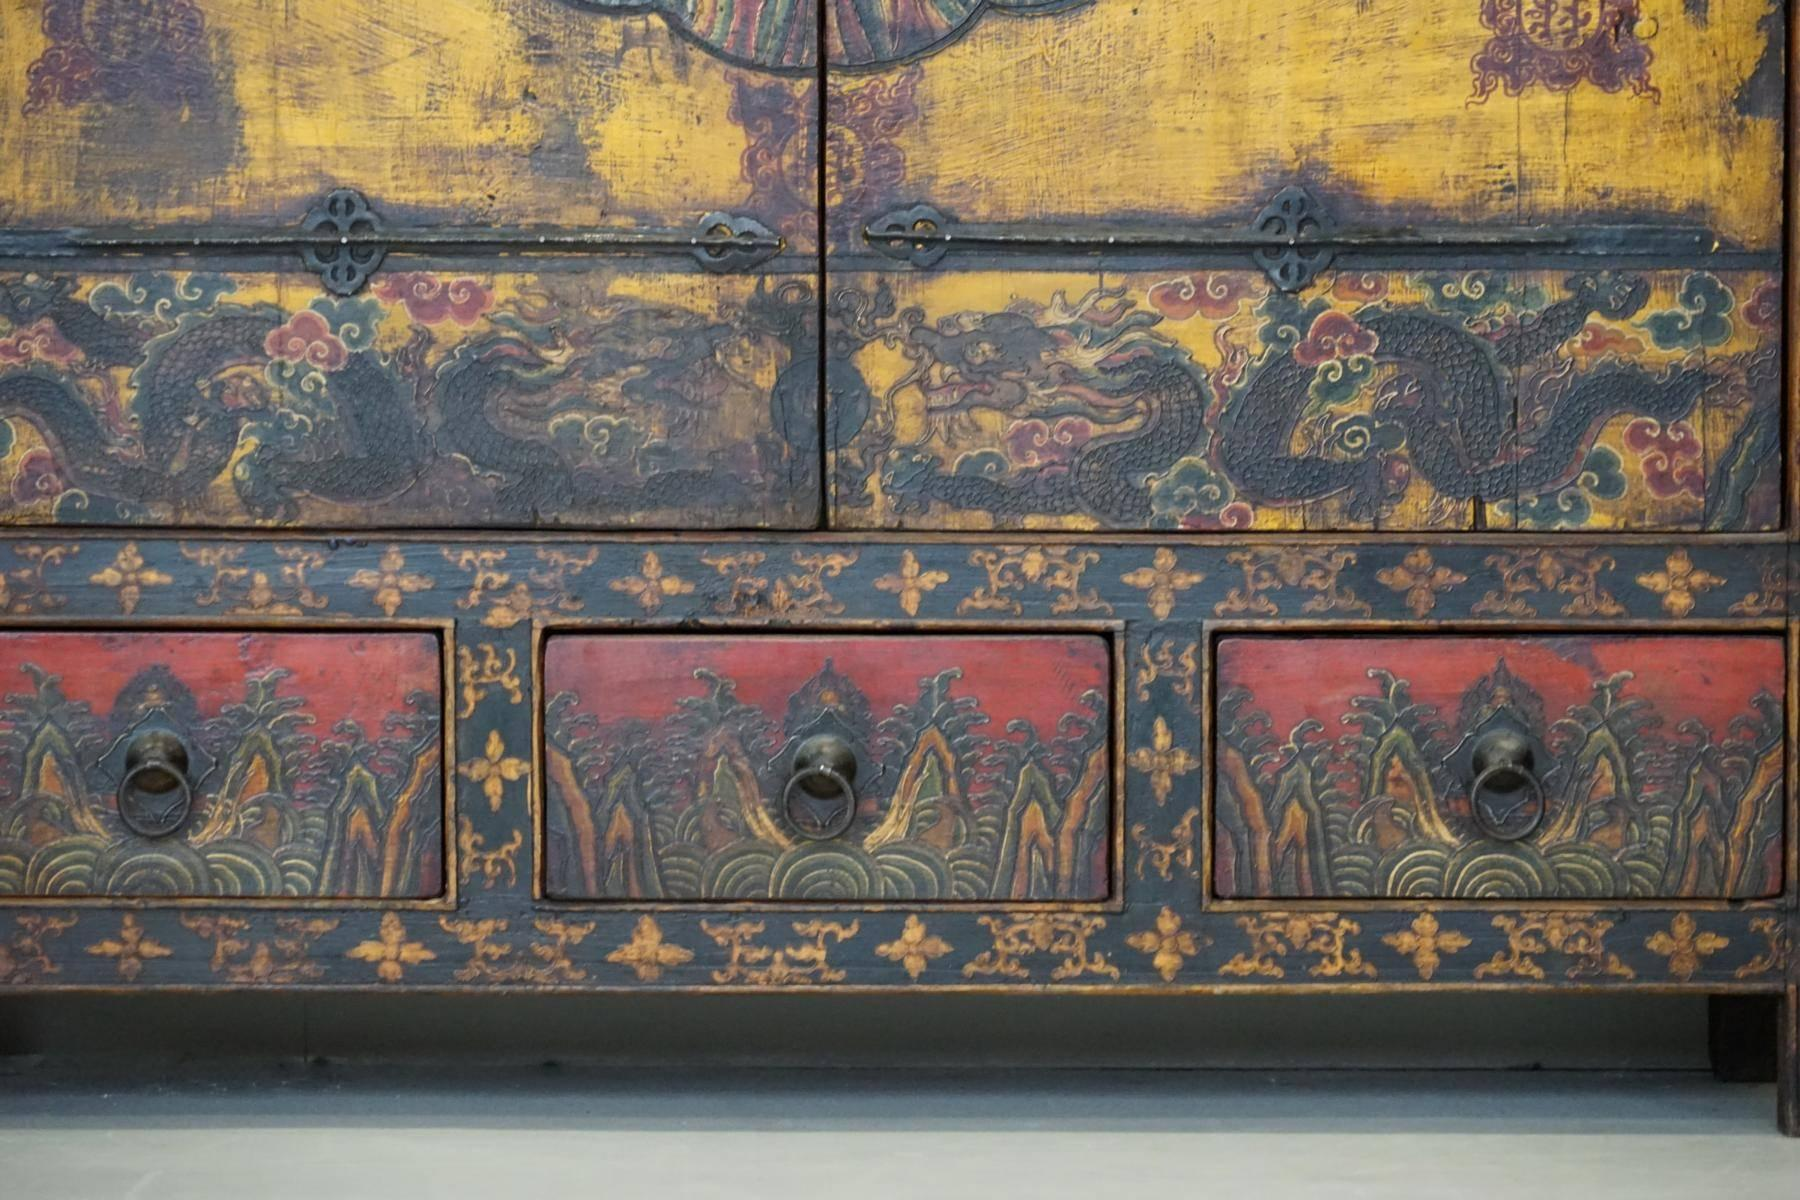 Antique Tibetan Cabinet Cupboard Painted Qing Dynasty Shanxi, 19th Century  In Good Condition For Sale